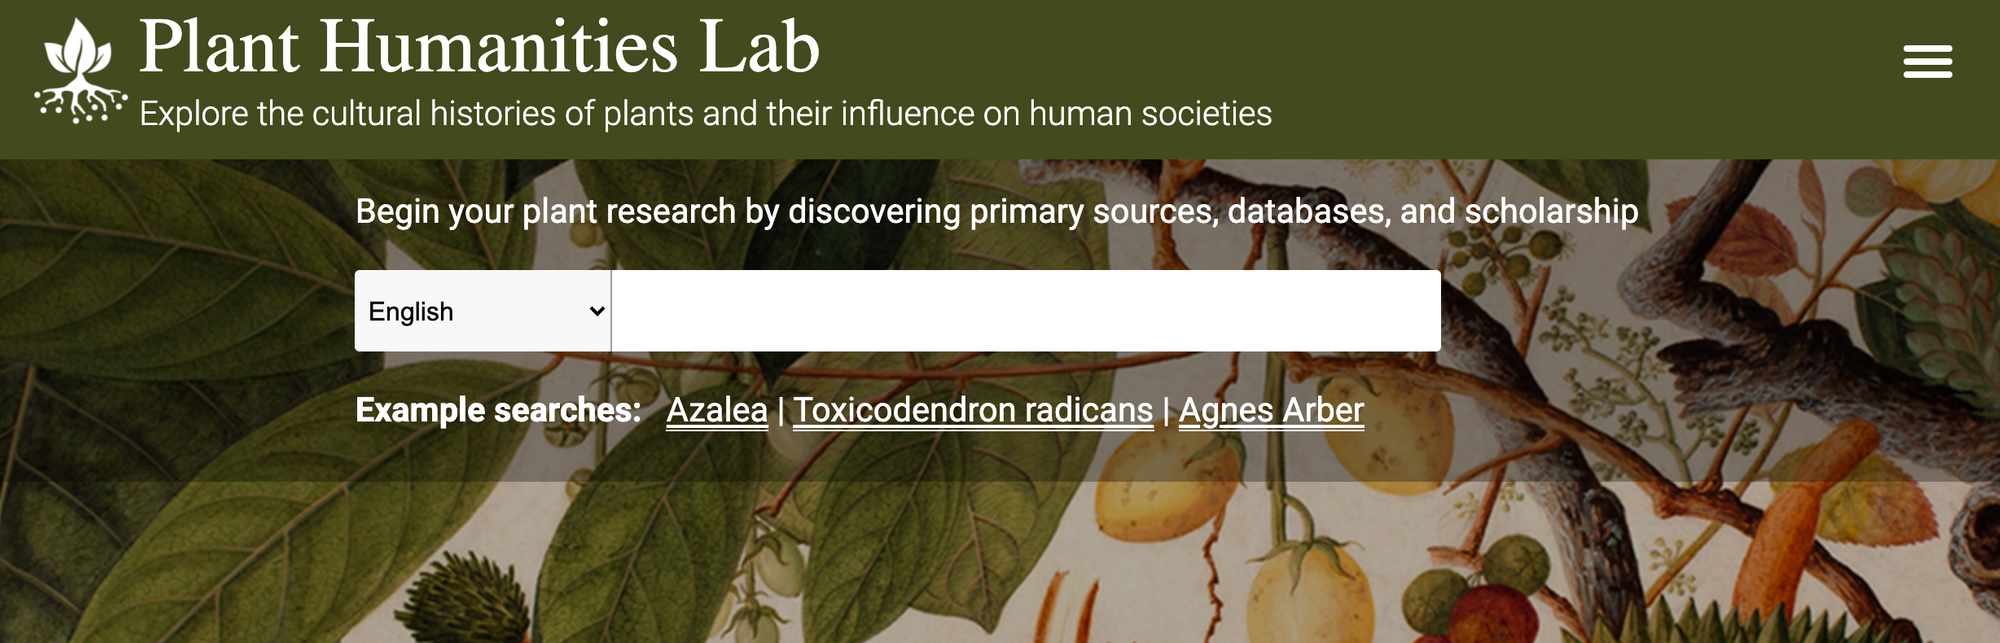 Introducing the Plant Humanities Lab